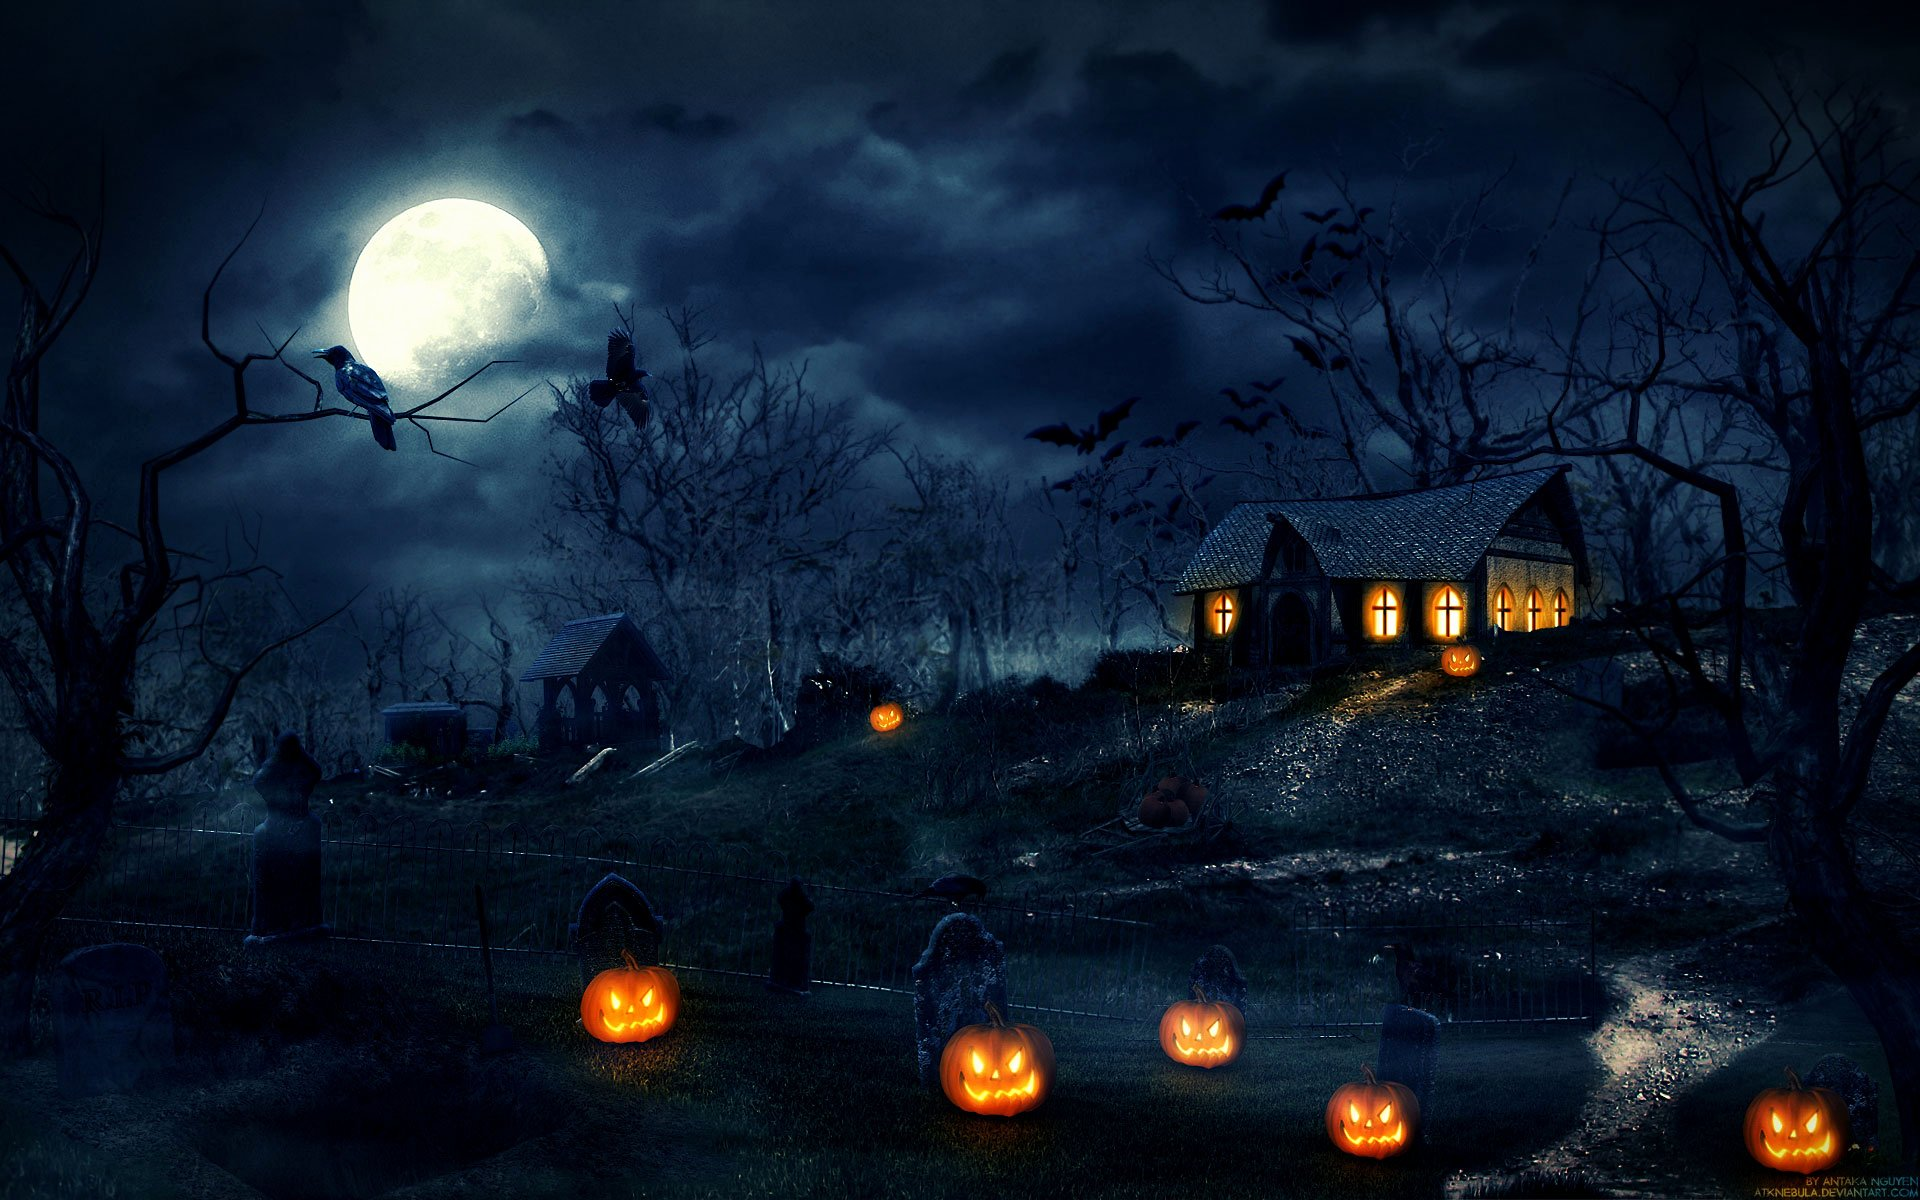 Free Halloween Background Images Lovely Free Scary Halloween Backgrounds & Wallpaper Collection 2014 – Designbolts